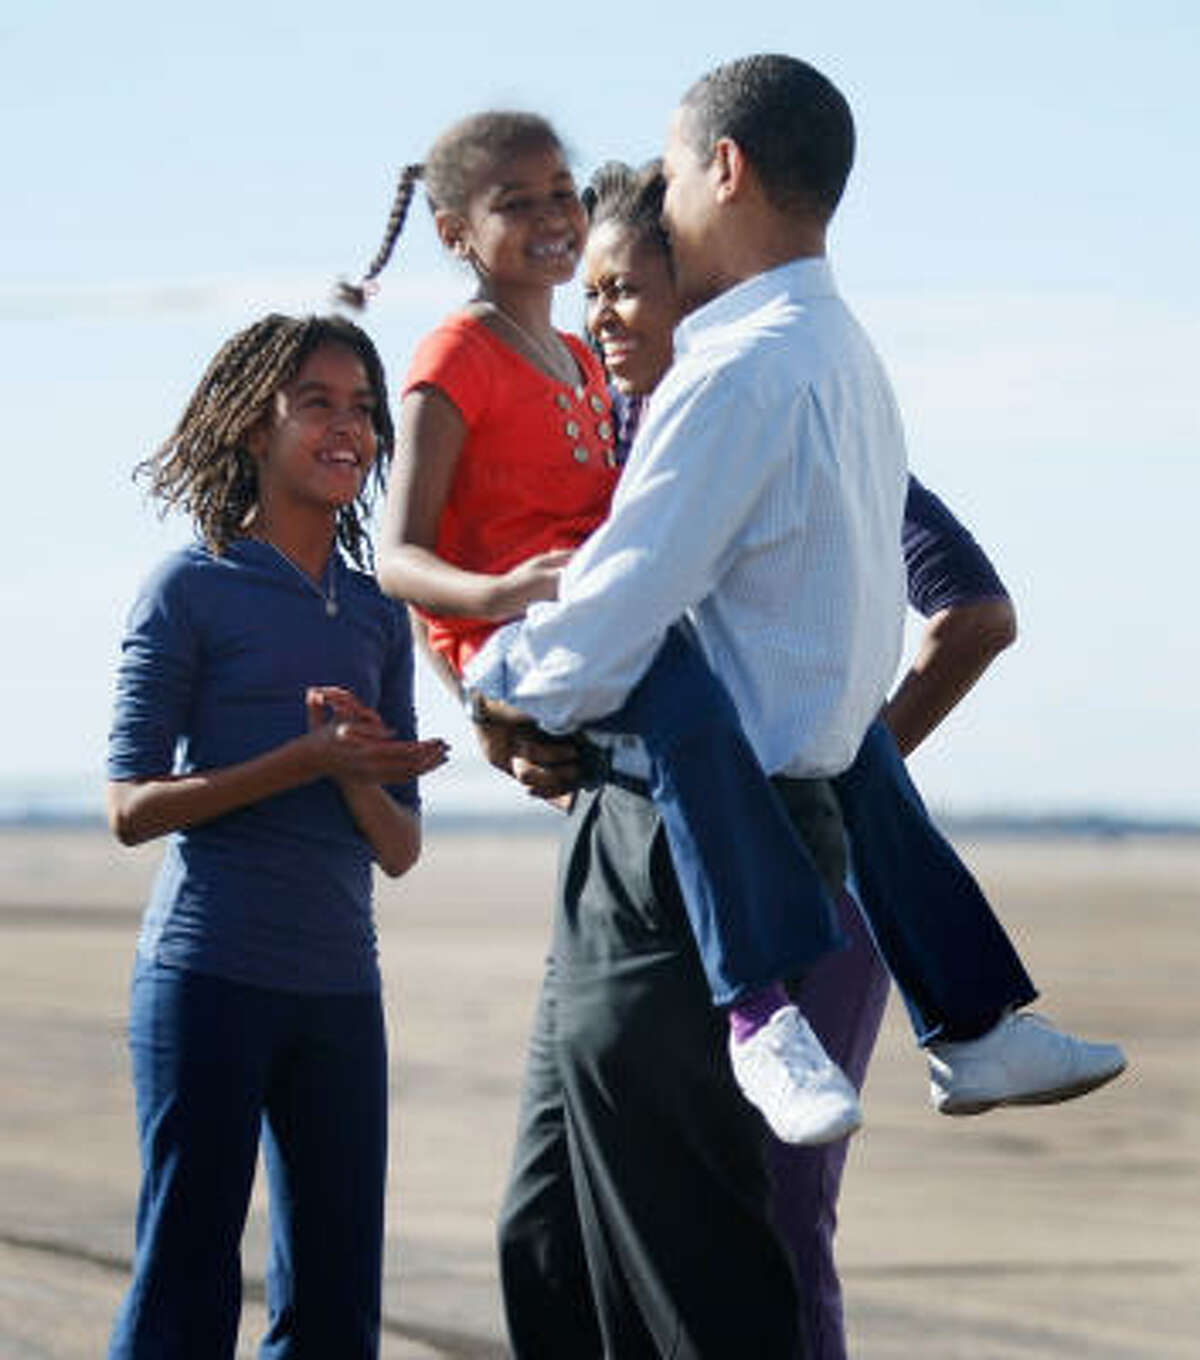 Barack Obama's family — daughters Malia and Sasha and wife Michelle — welcome him to Pueblo, Colo., on Saturday.